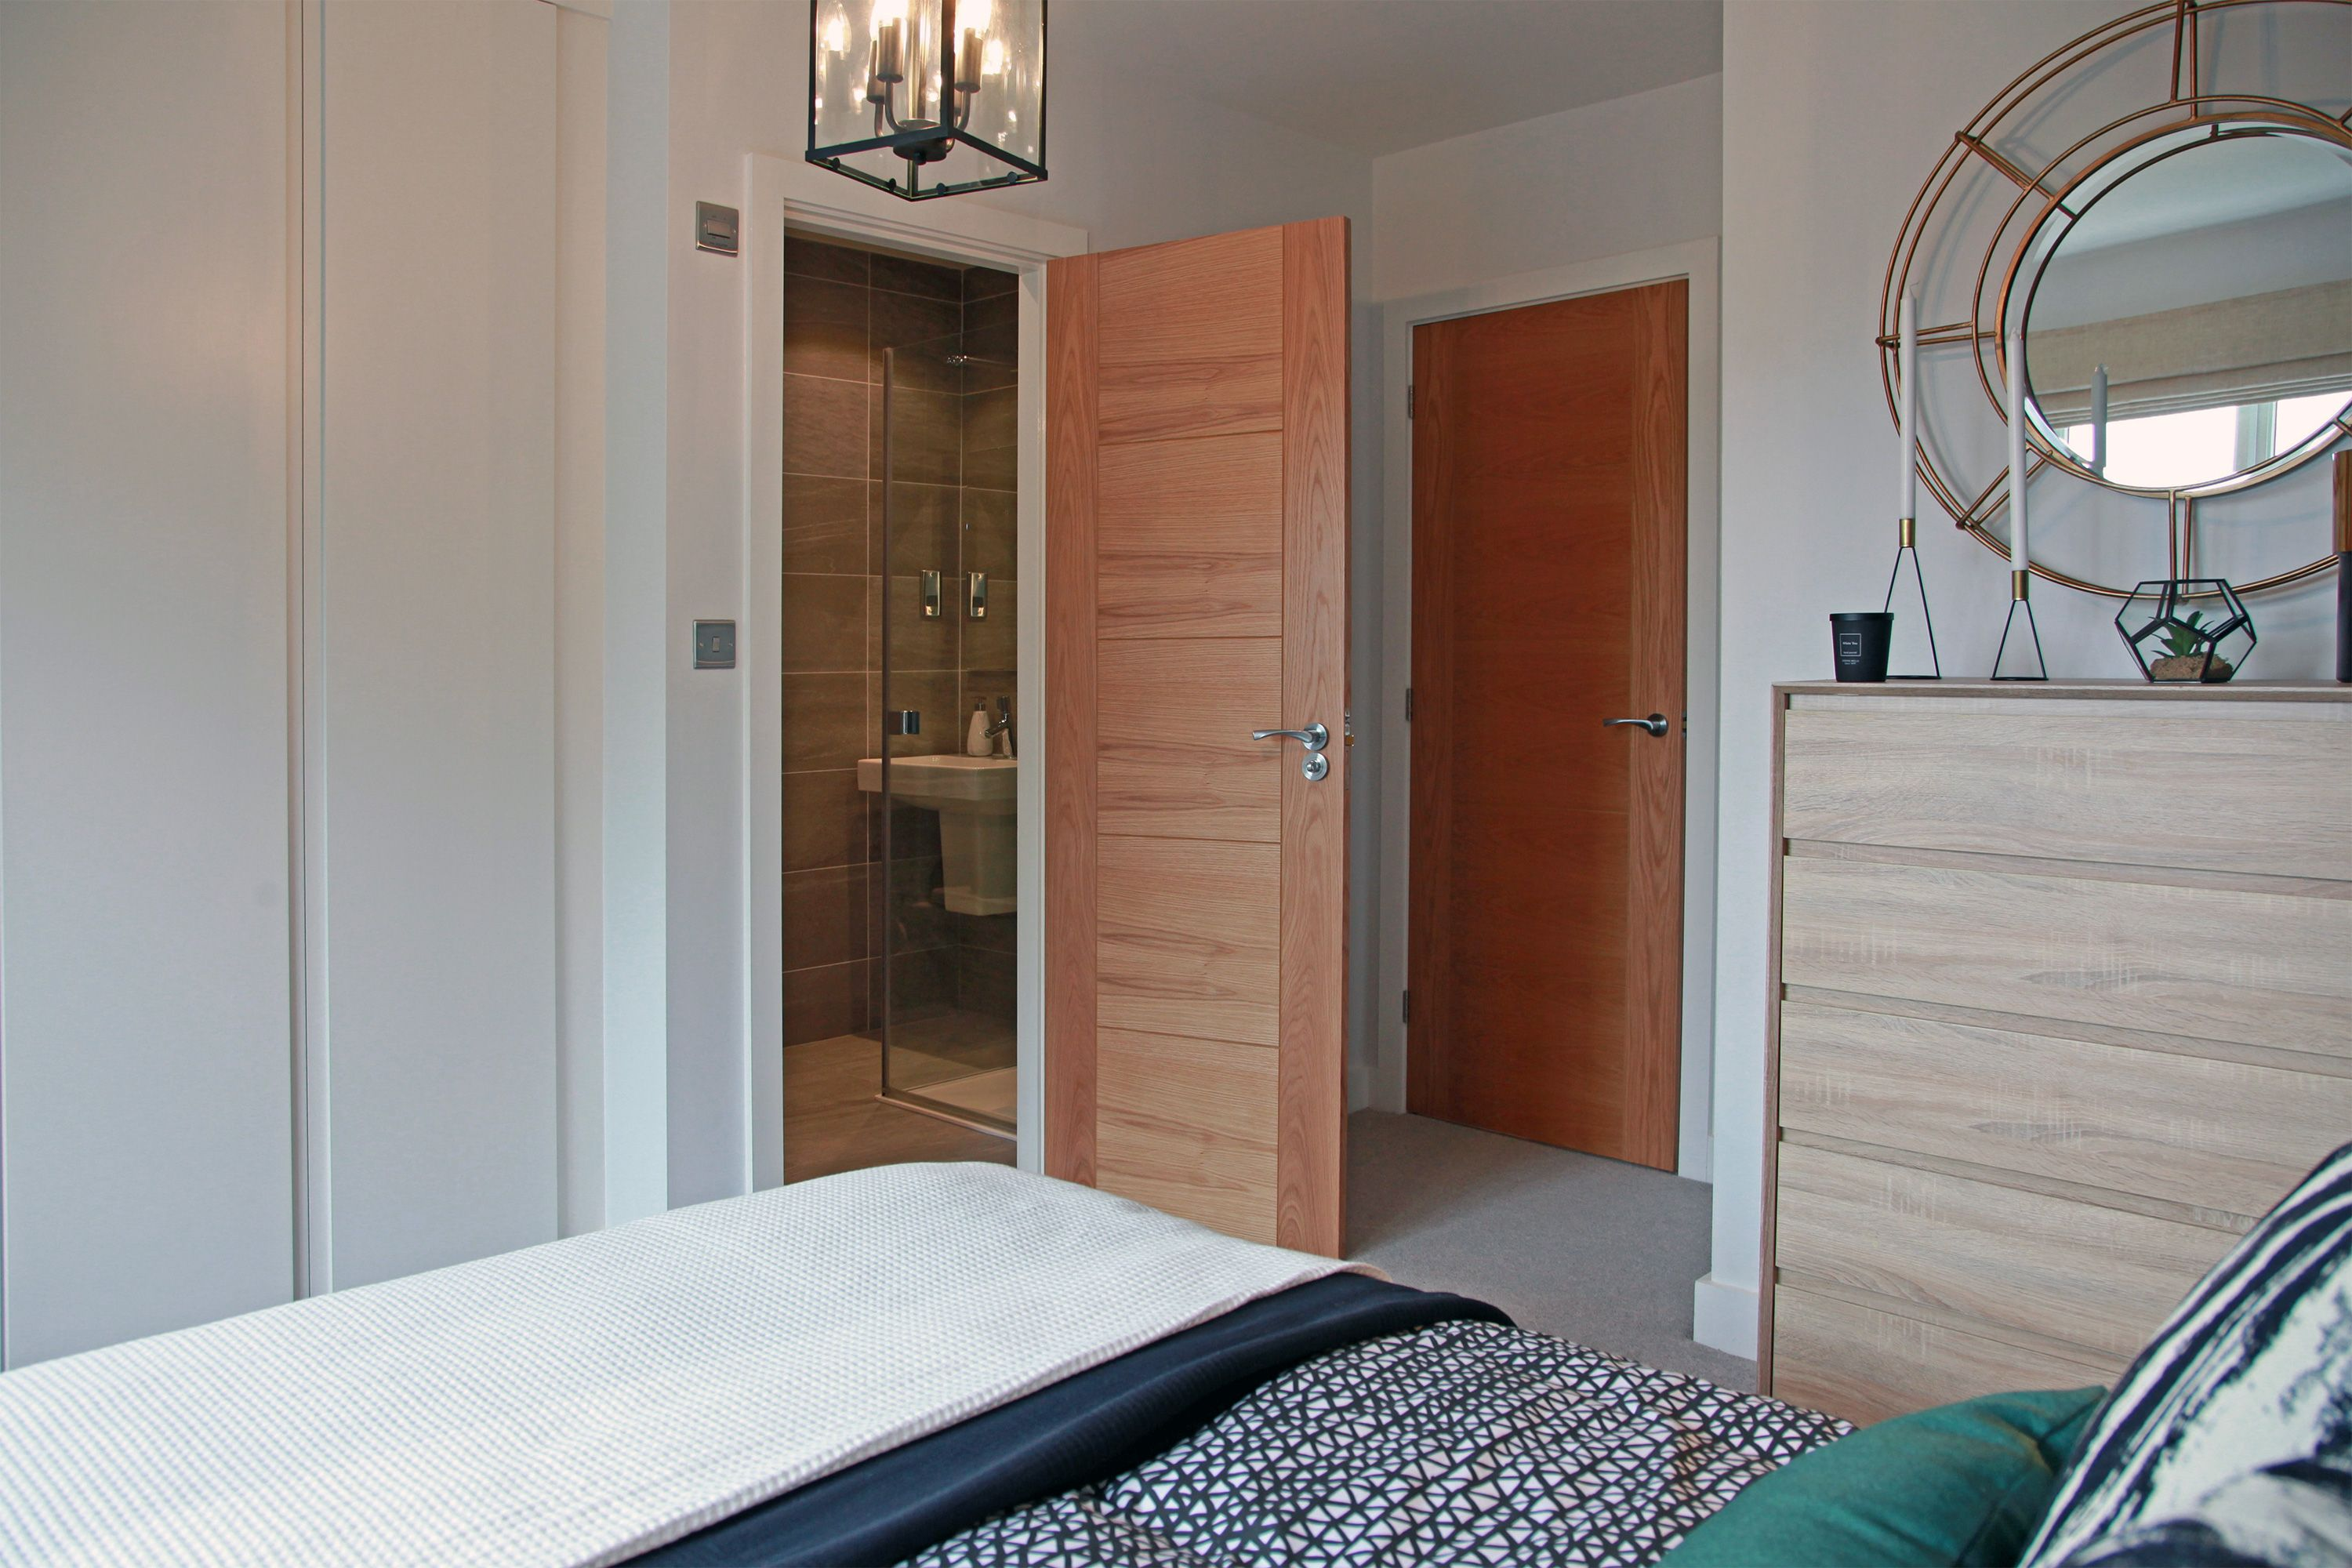 Master bedroom ensuite design  The master bedroom at Swaine Meadows leads into its own private